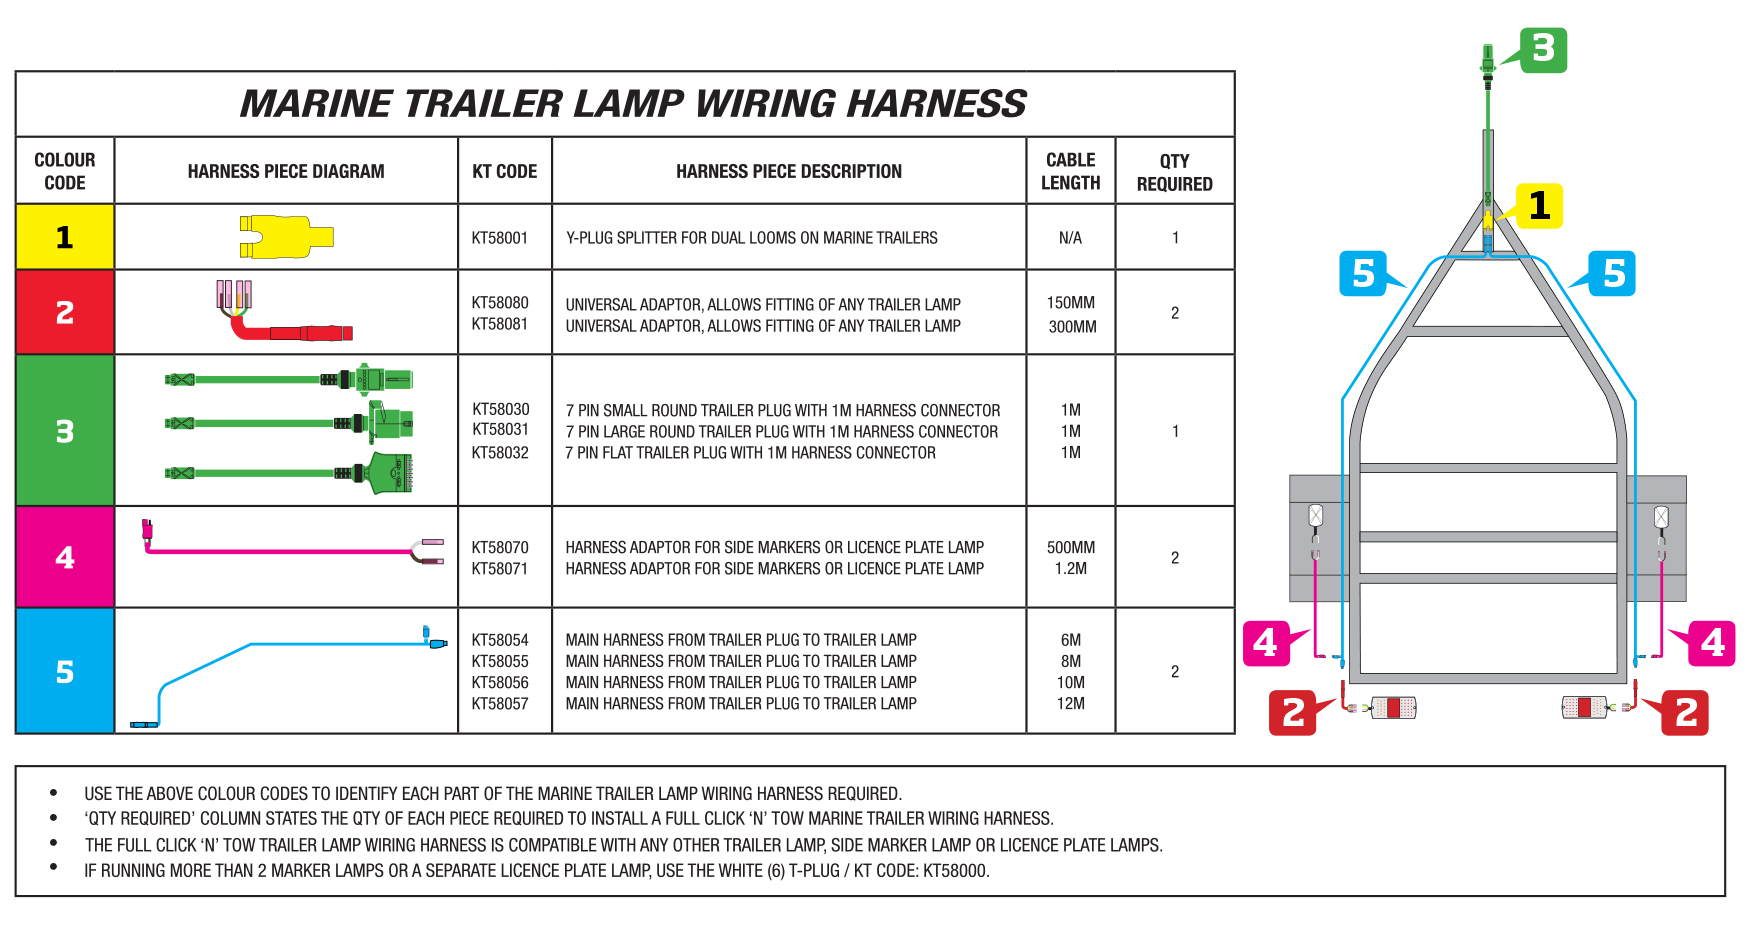 click n tow 148 5mm x 210mm print ready wiring diagram for multiple light fixtures make it with pallets blazer led trailer lights wiring diagram at bakdesigns.co